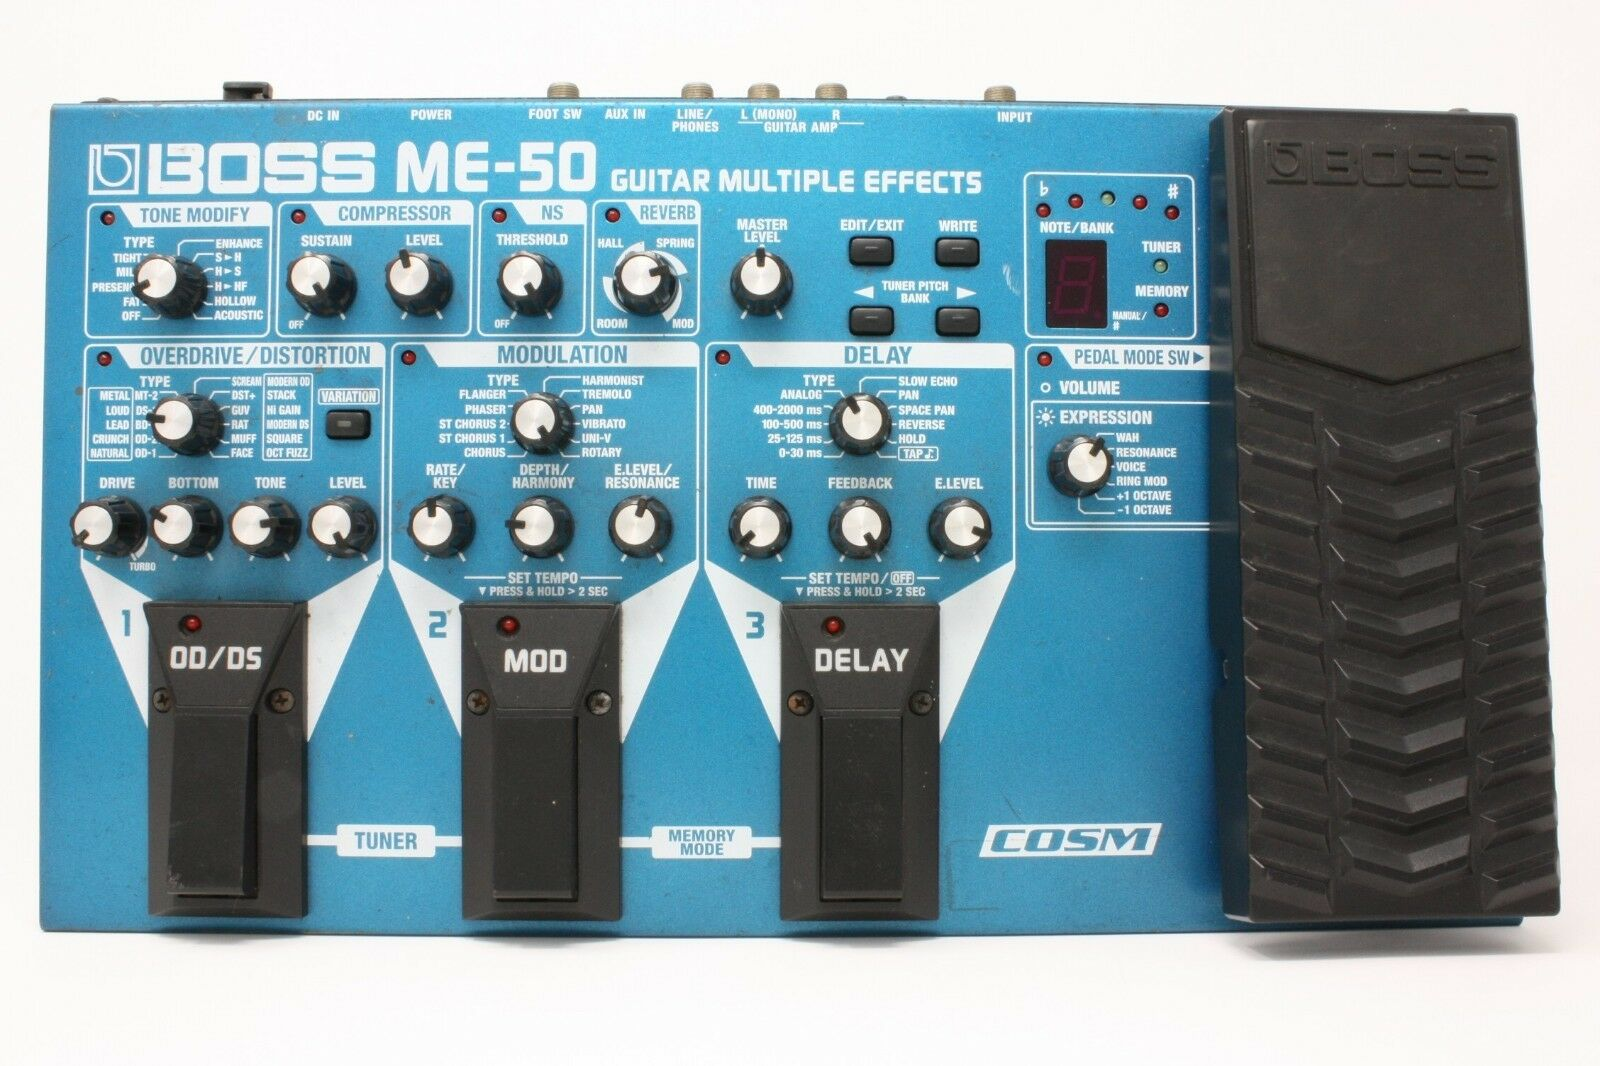 BOSS ME-50 Multi-Effects Guitar Effect Pedal From Japan 0210_190F